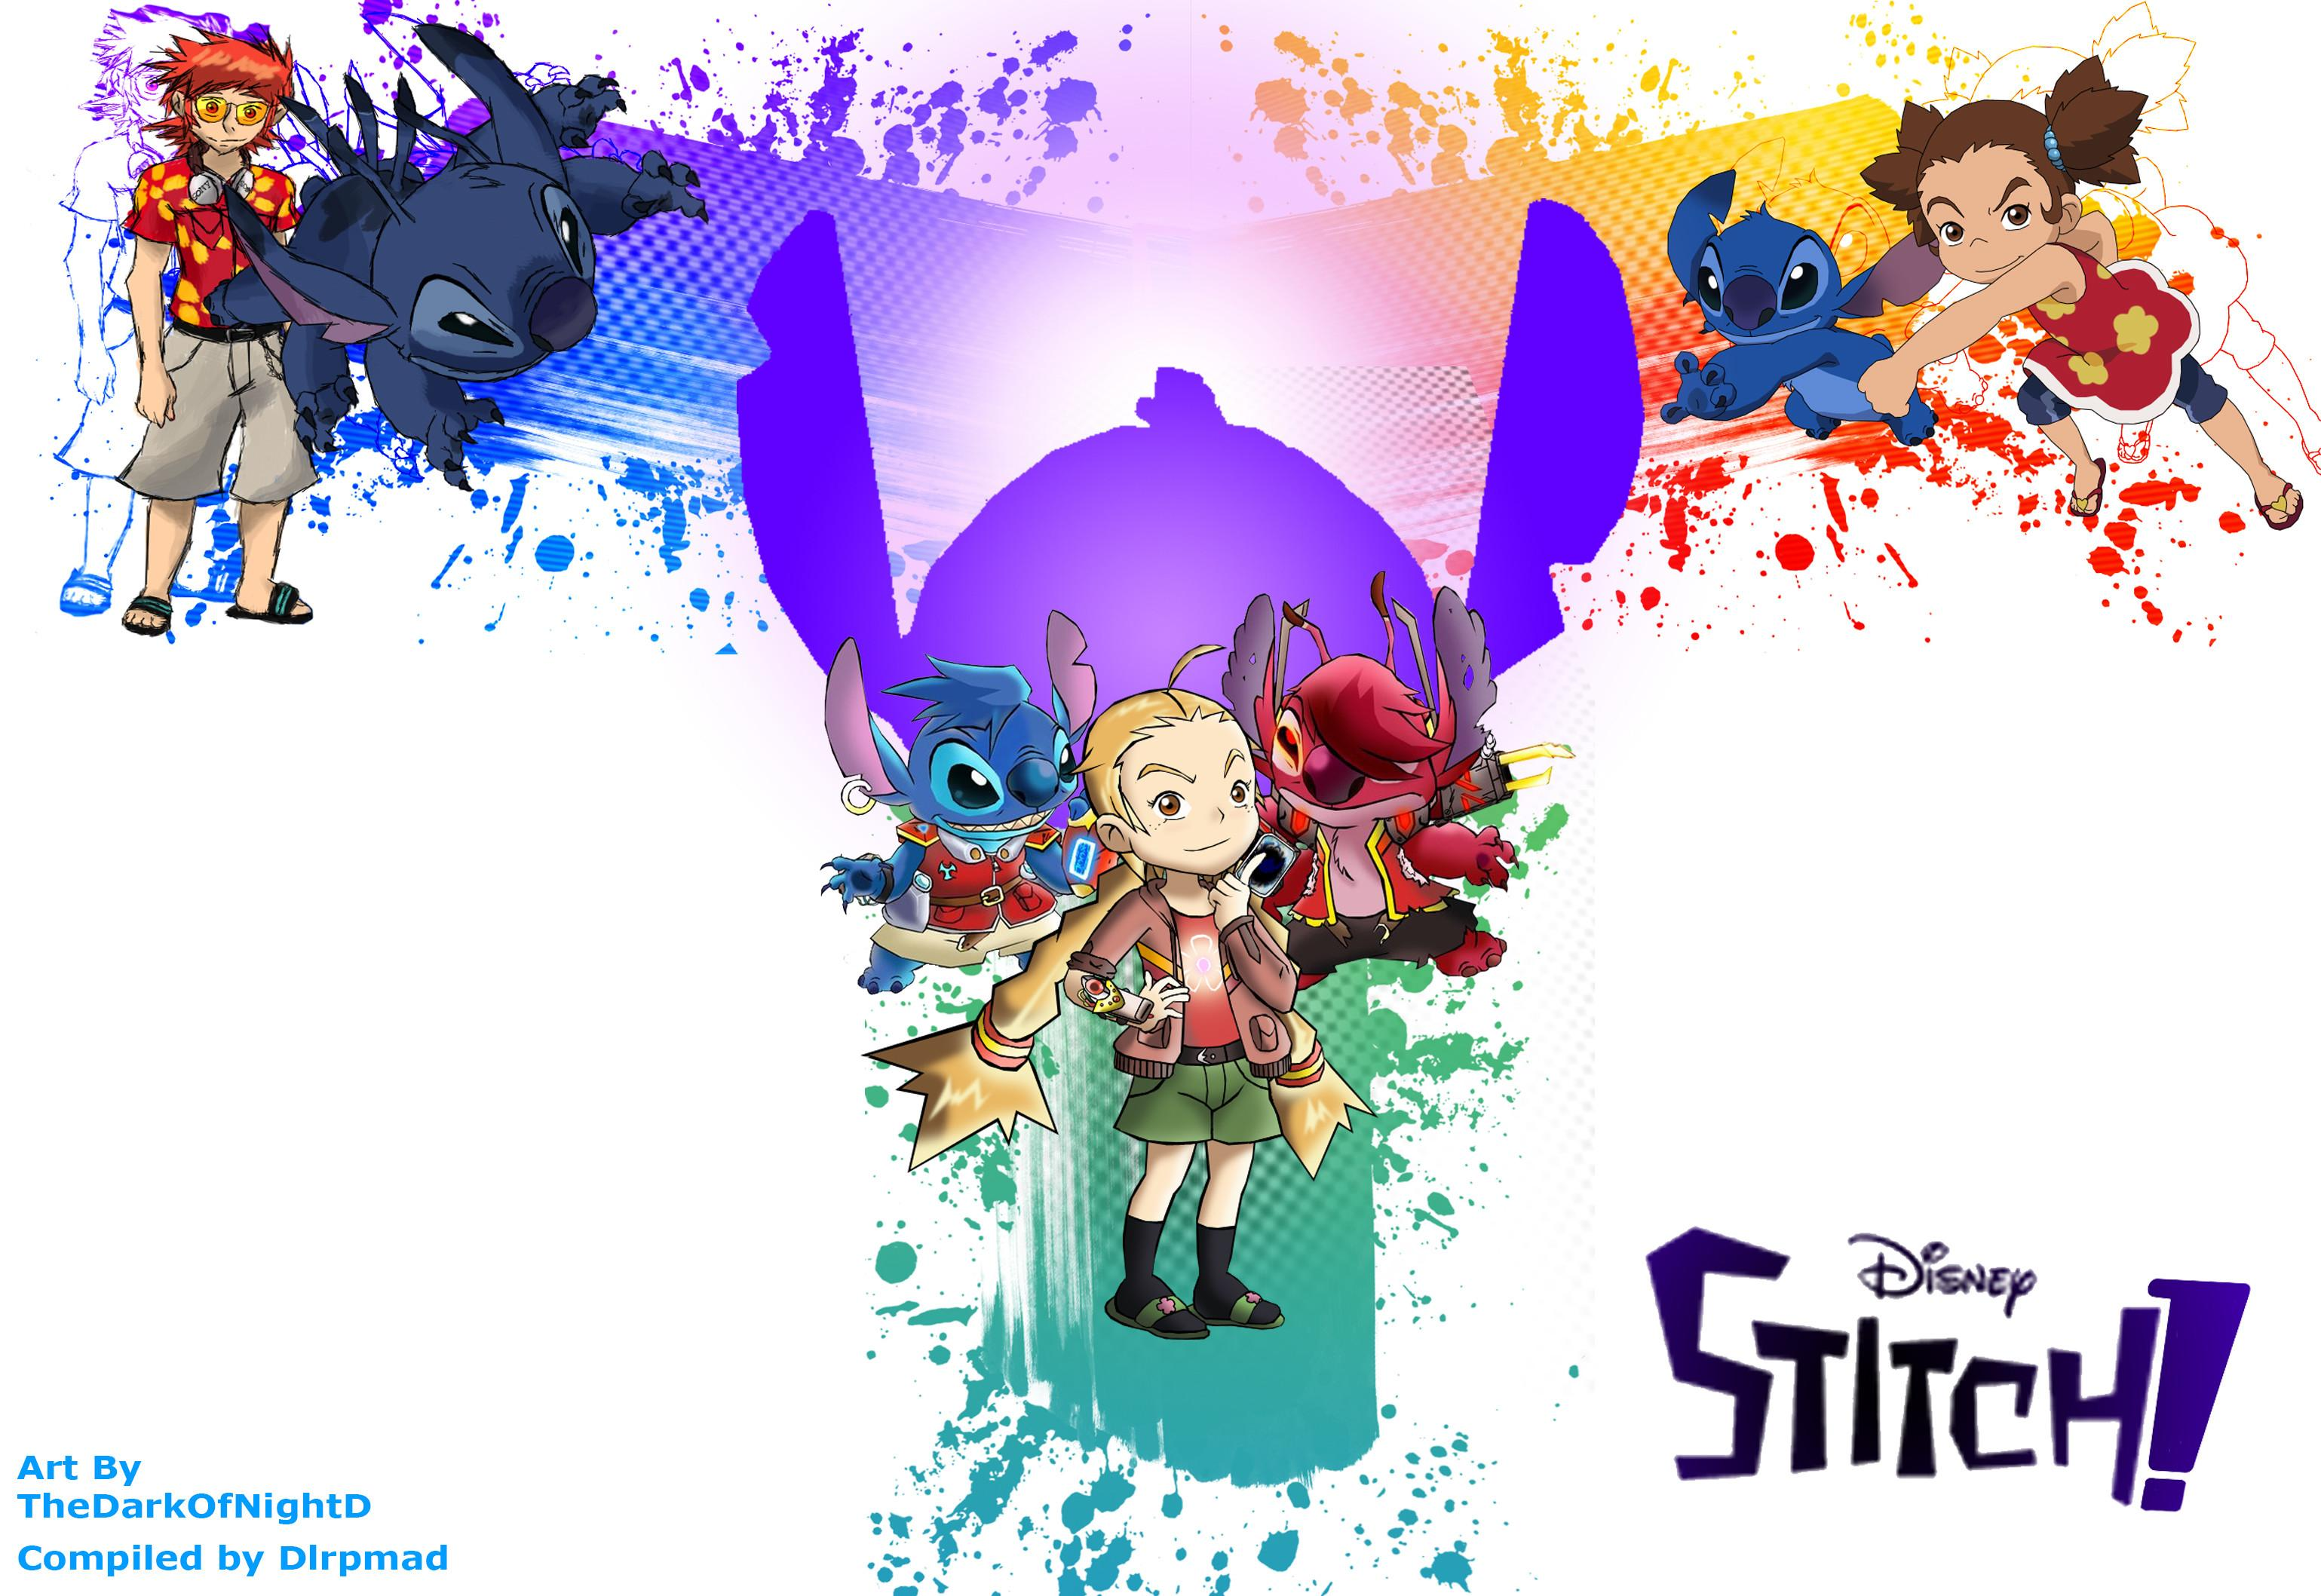 Stitch Wallpaper For Laptop (52+), Encuentra fondos de pantalla HD gratis